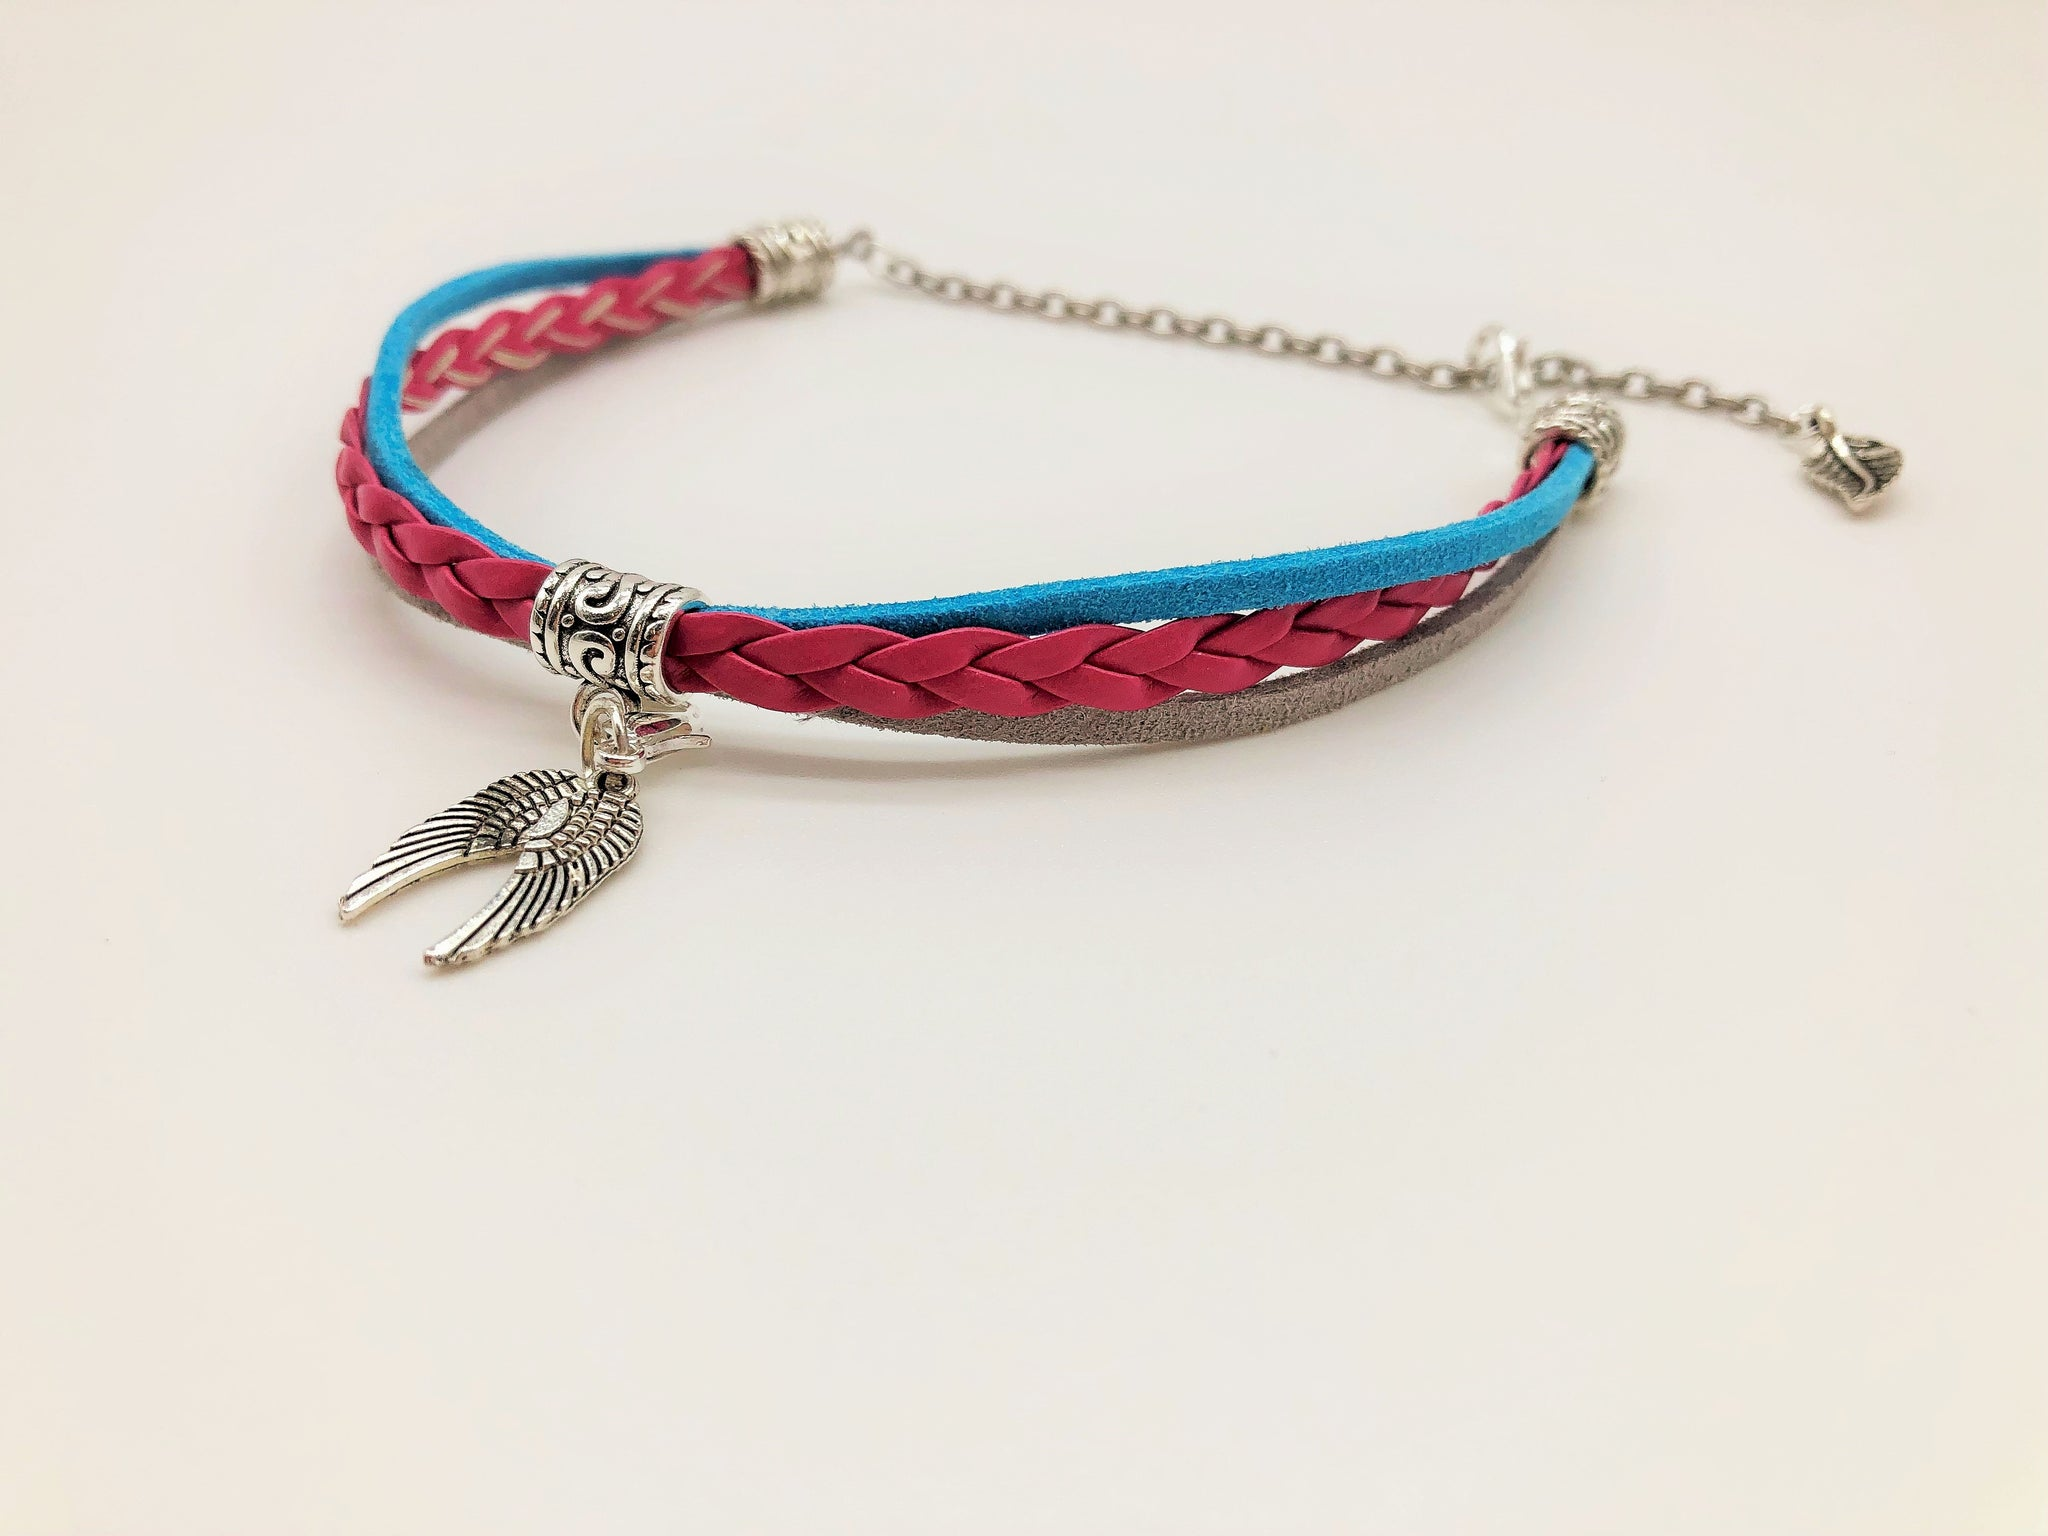 Evening Sky Faux suede & Leather Anklet with Angel Wing charms